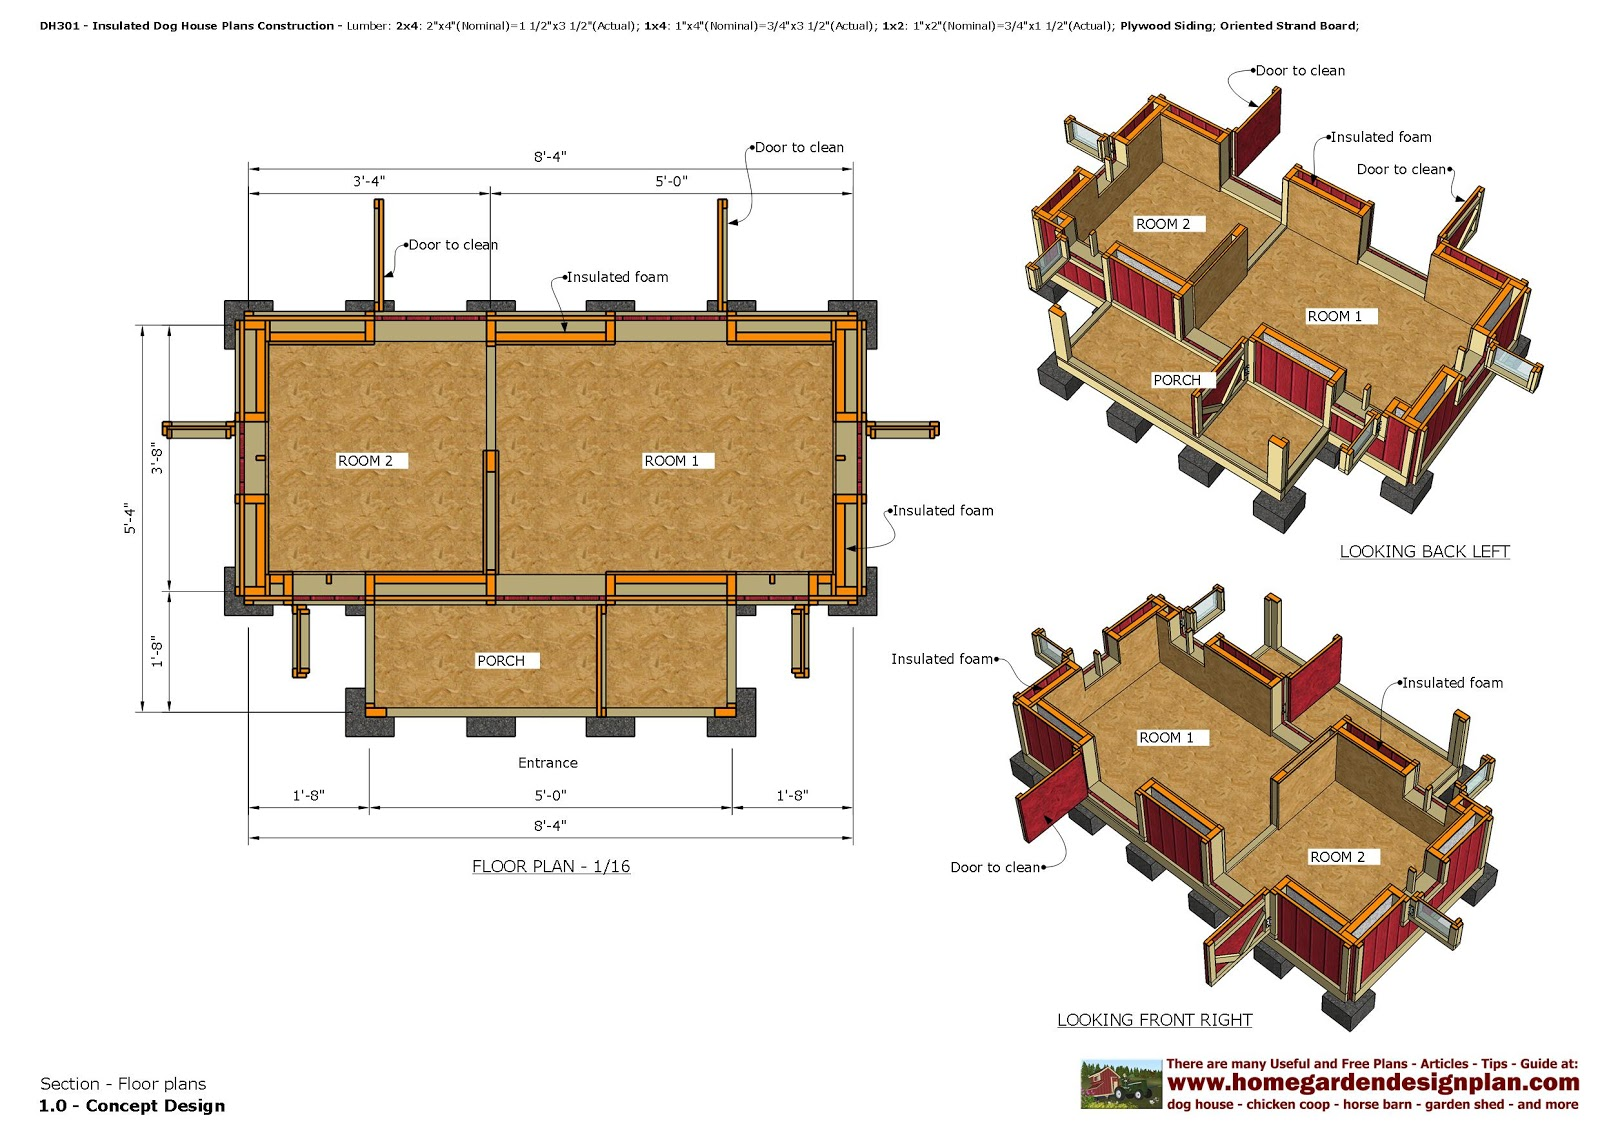 home garden plans: DH301 - Insulated Dog House Plans - Dog ... on downloadable house plans, very small house plans, reasonable house plans, preliminary house plans, defensive house plans, colored house plans, passive house plans, compound house plans,